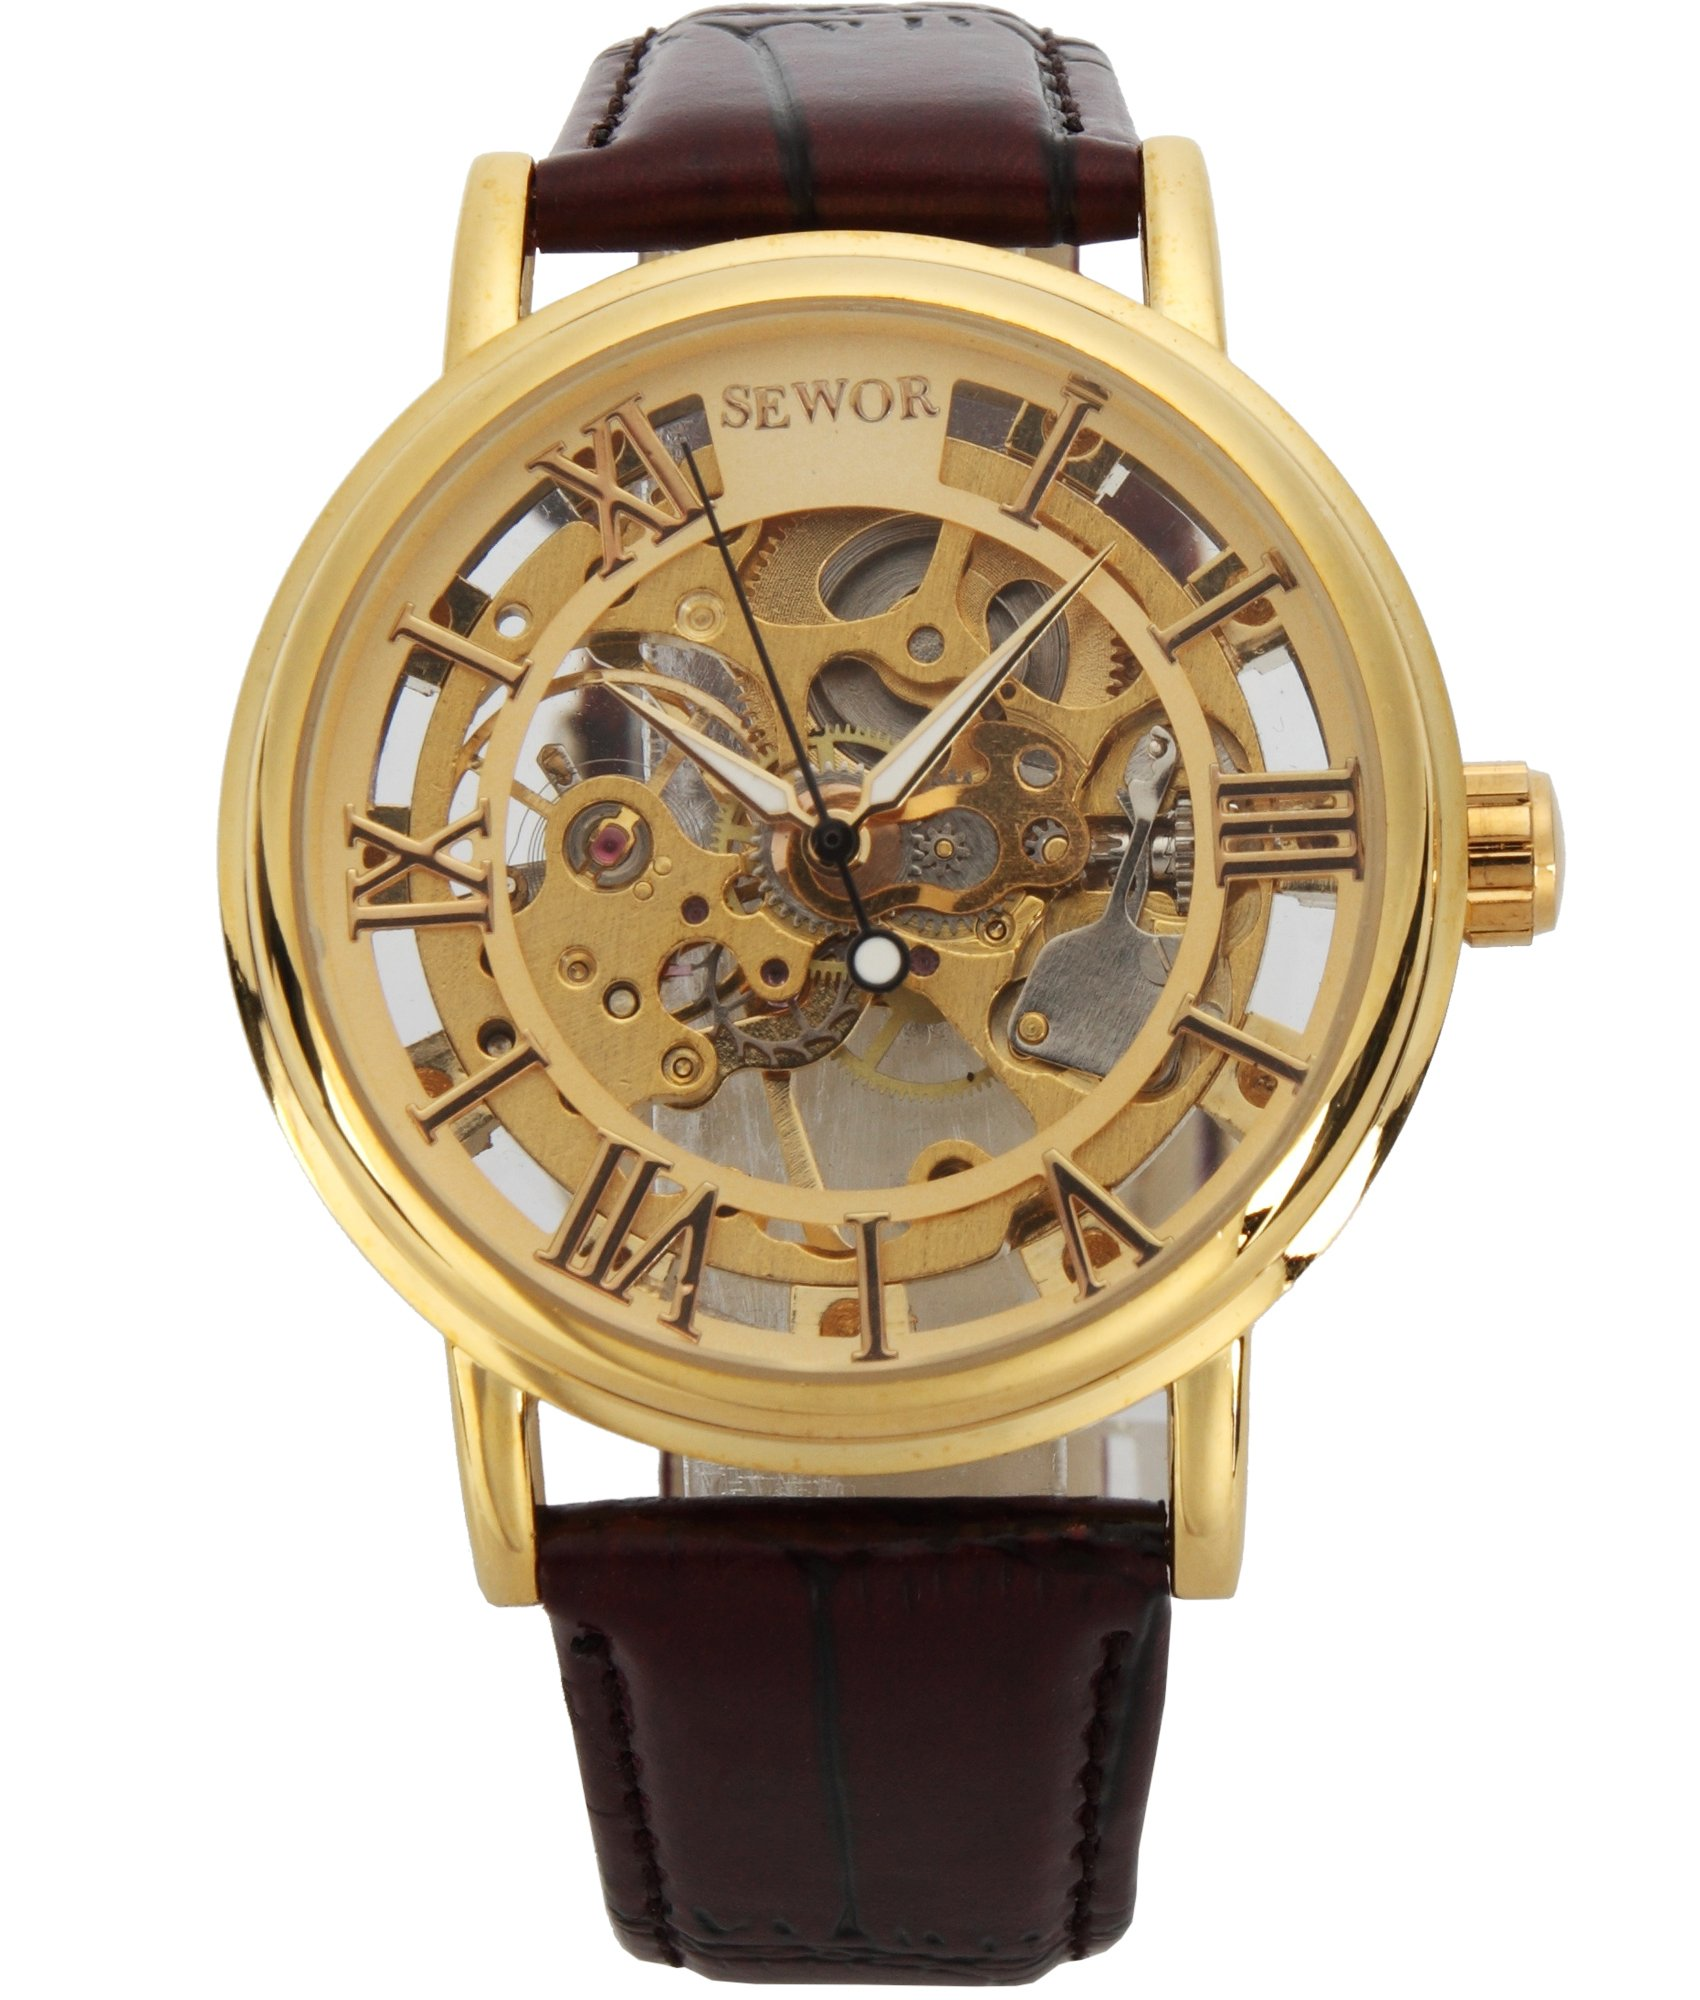 SEWOR Men's Mechanical Skeleton Transparent Vintage Style Leather Wrist Watch (GOLD)